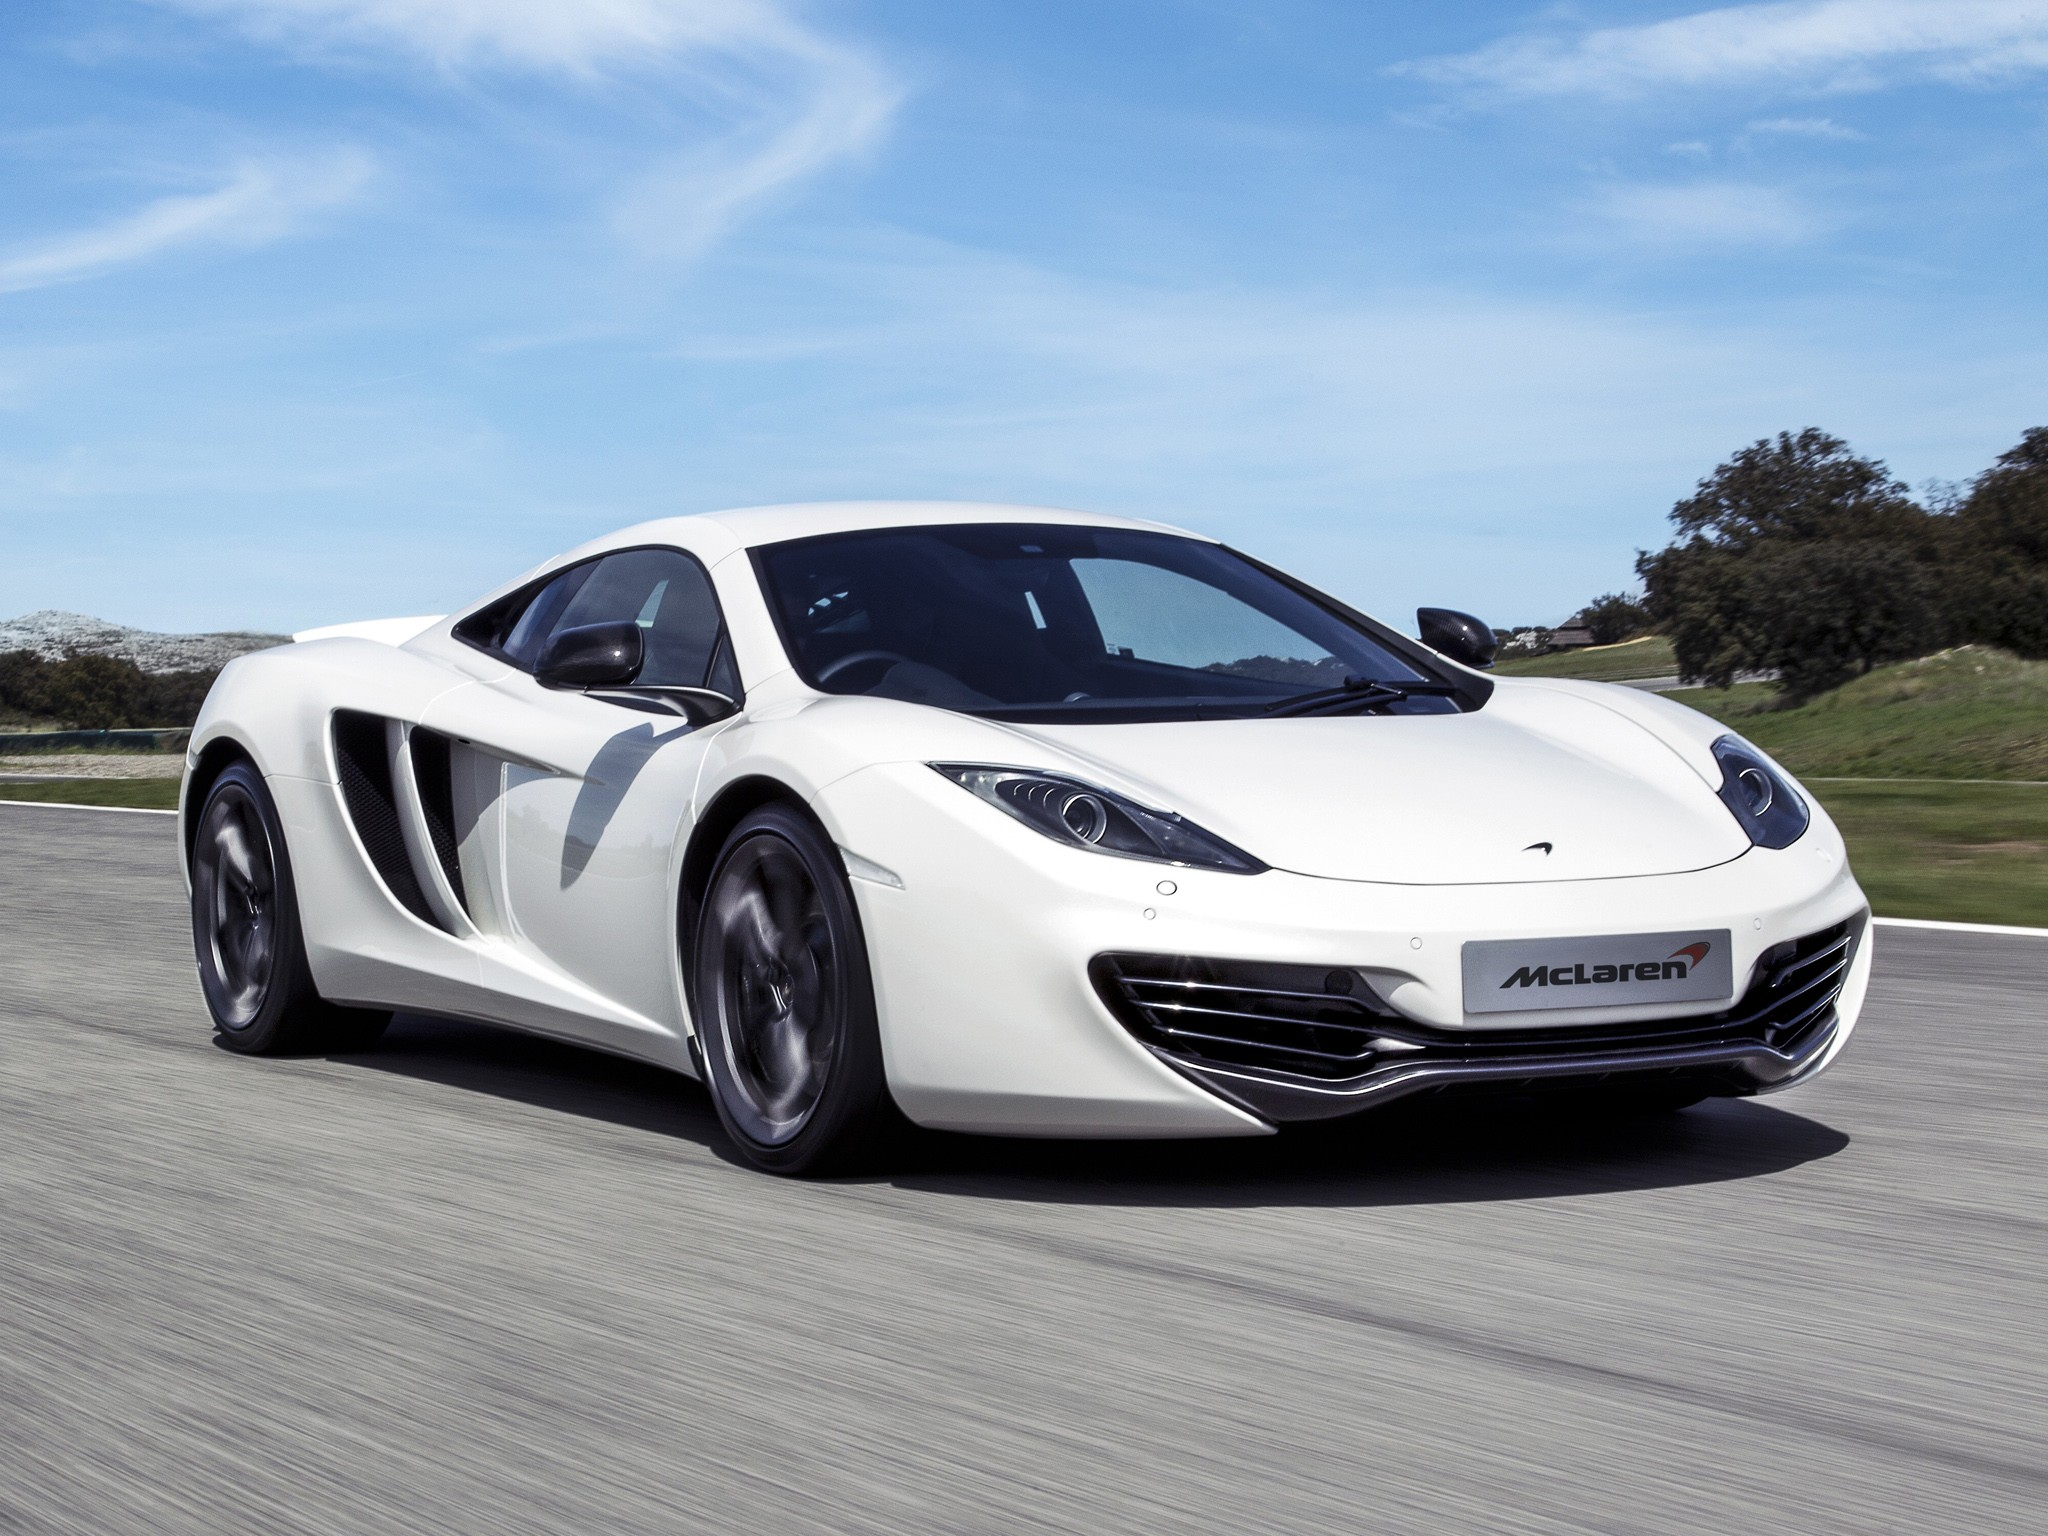 mclaren mp4 12c specs photos 2011 2012 2013 2014 autoevolution. Black Bedroom Furniture Sets. Home Design Ideas